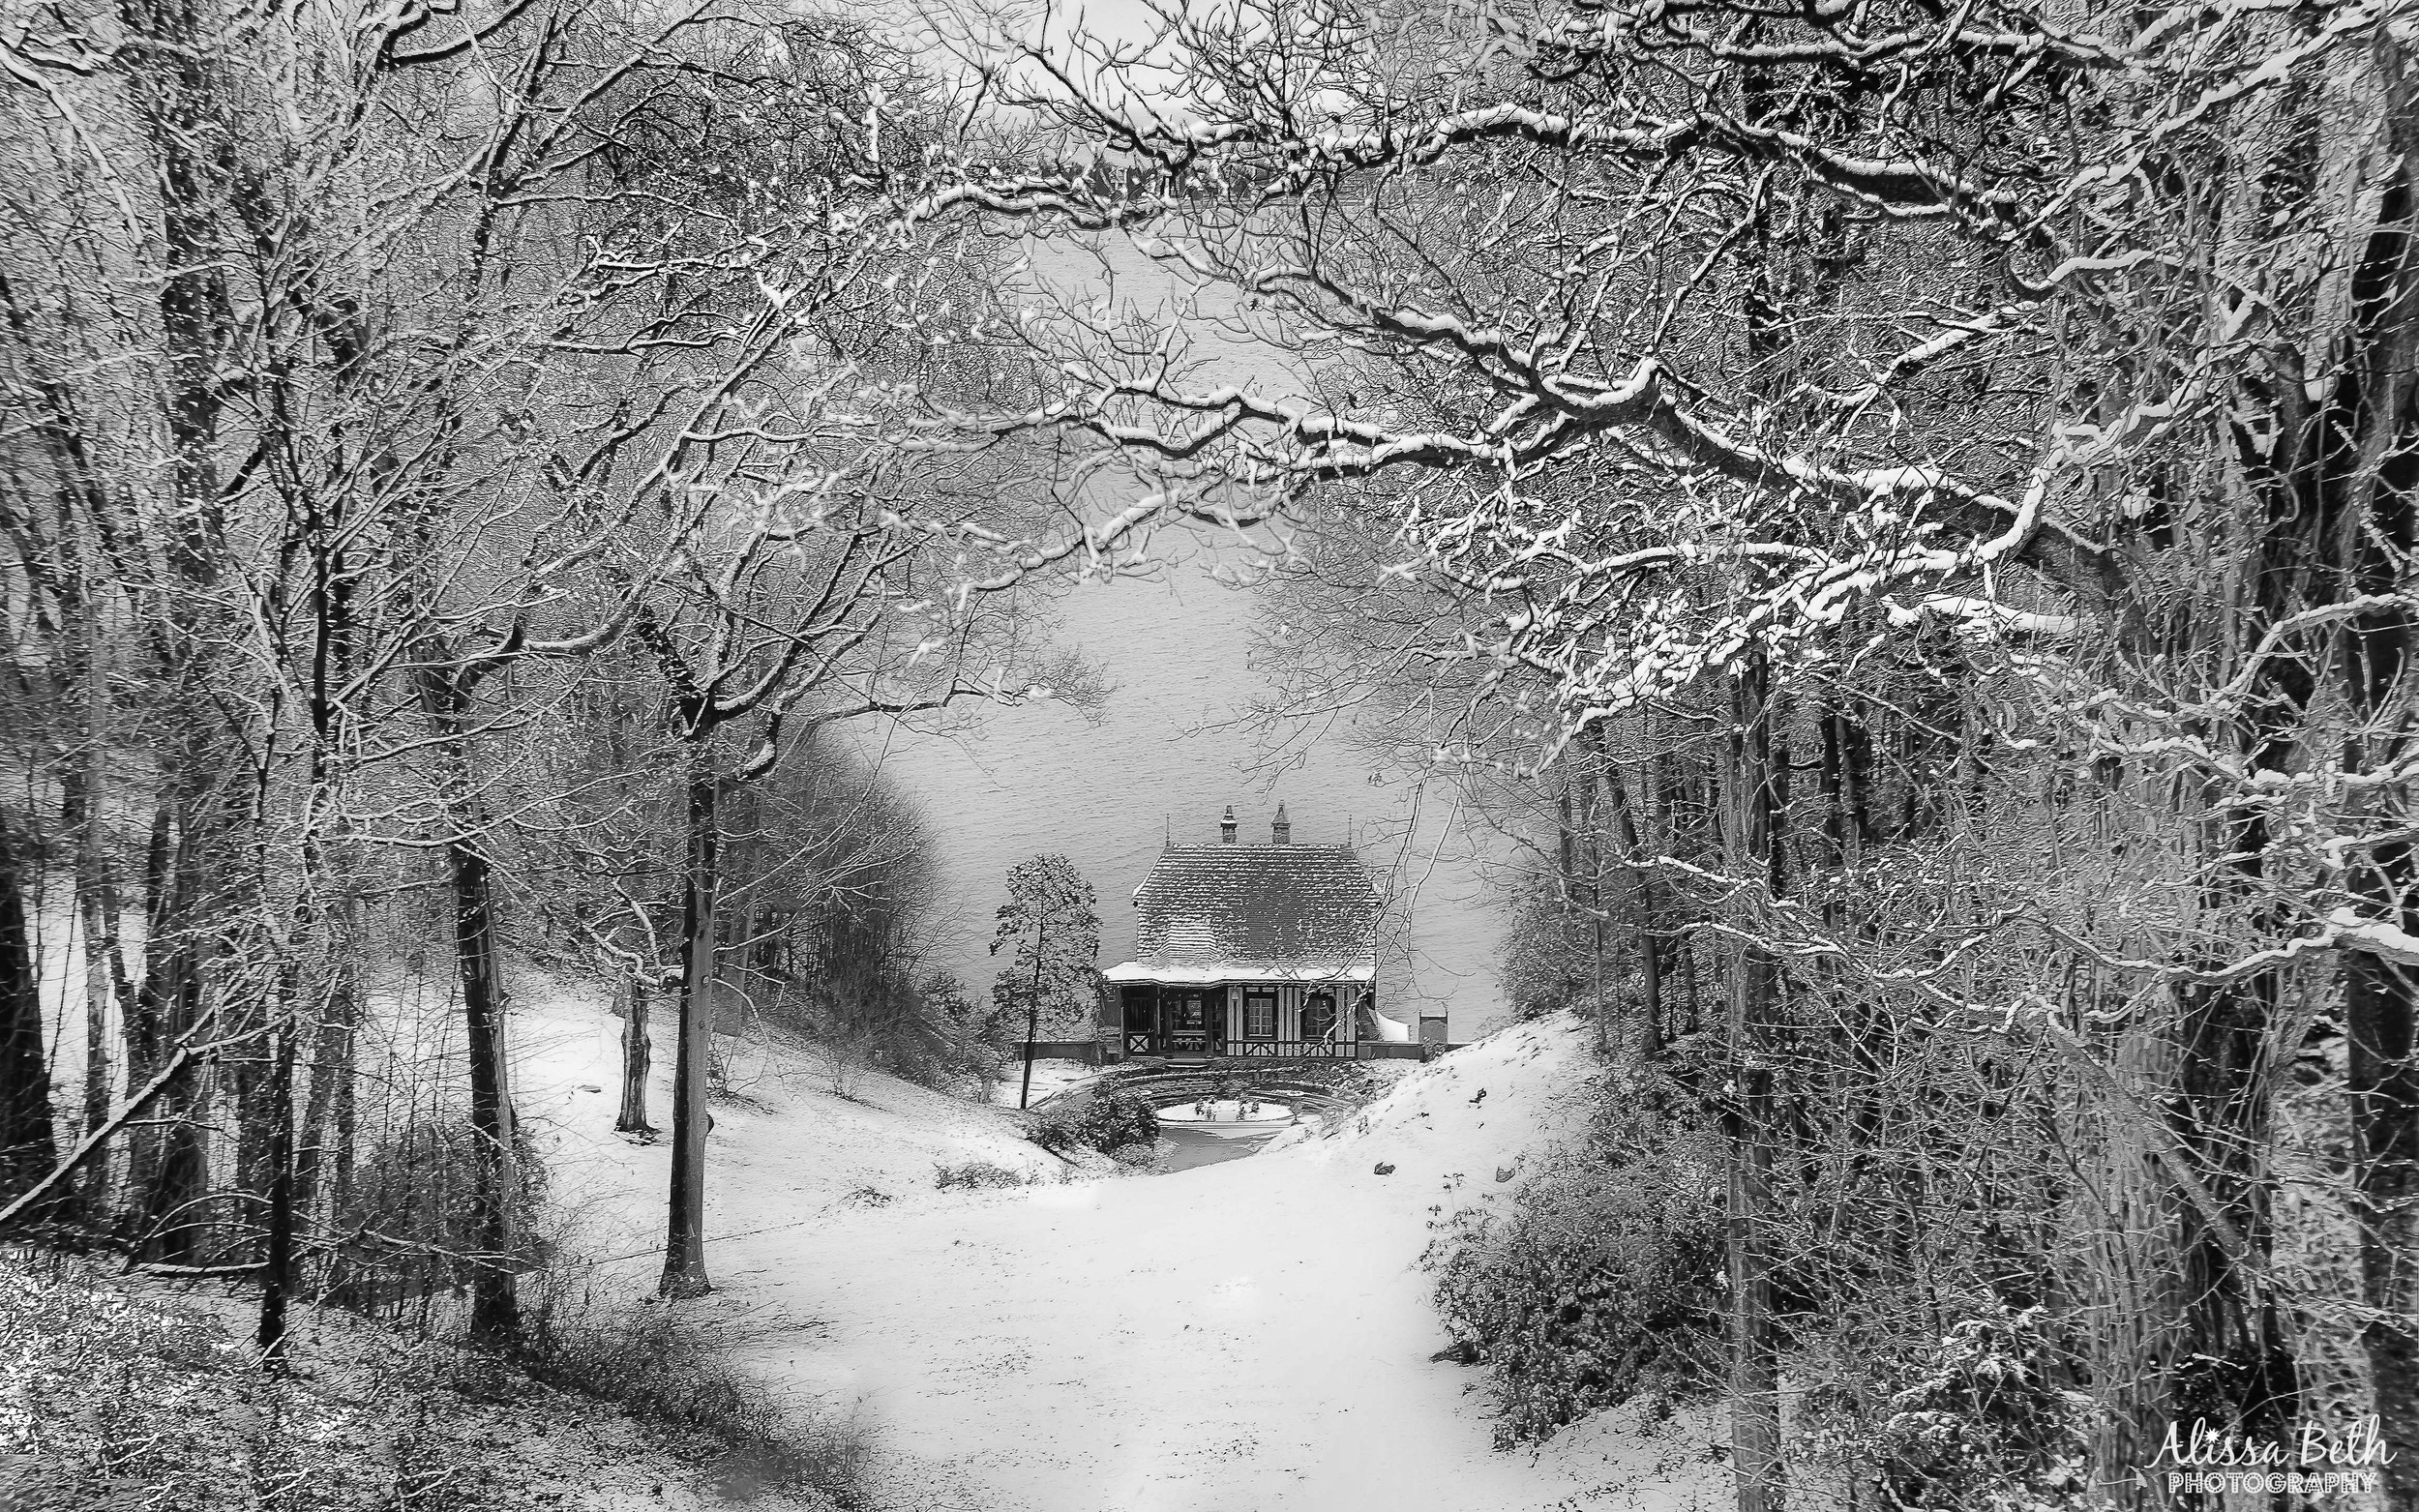 """""""A Winter's Tale,"""" by Alissa Rosenberg, of Commack, overlooks a scenic view of the Vanderbilt Museum boathouse in Centerport during a snowstorm."""